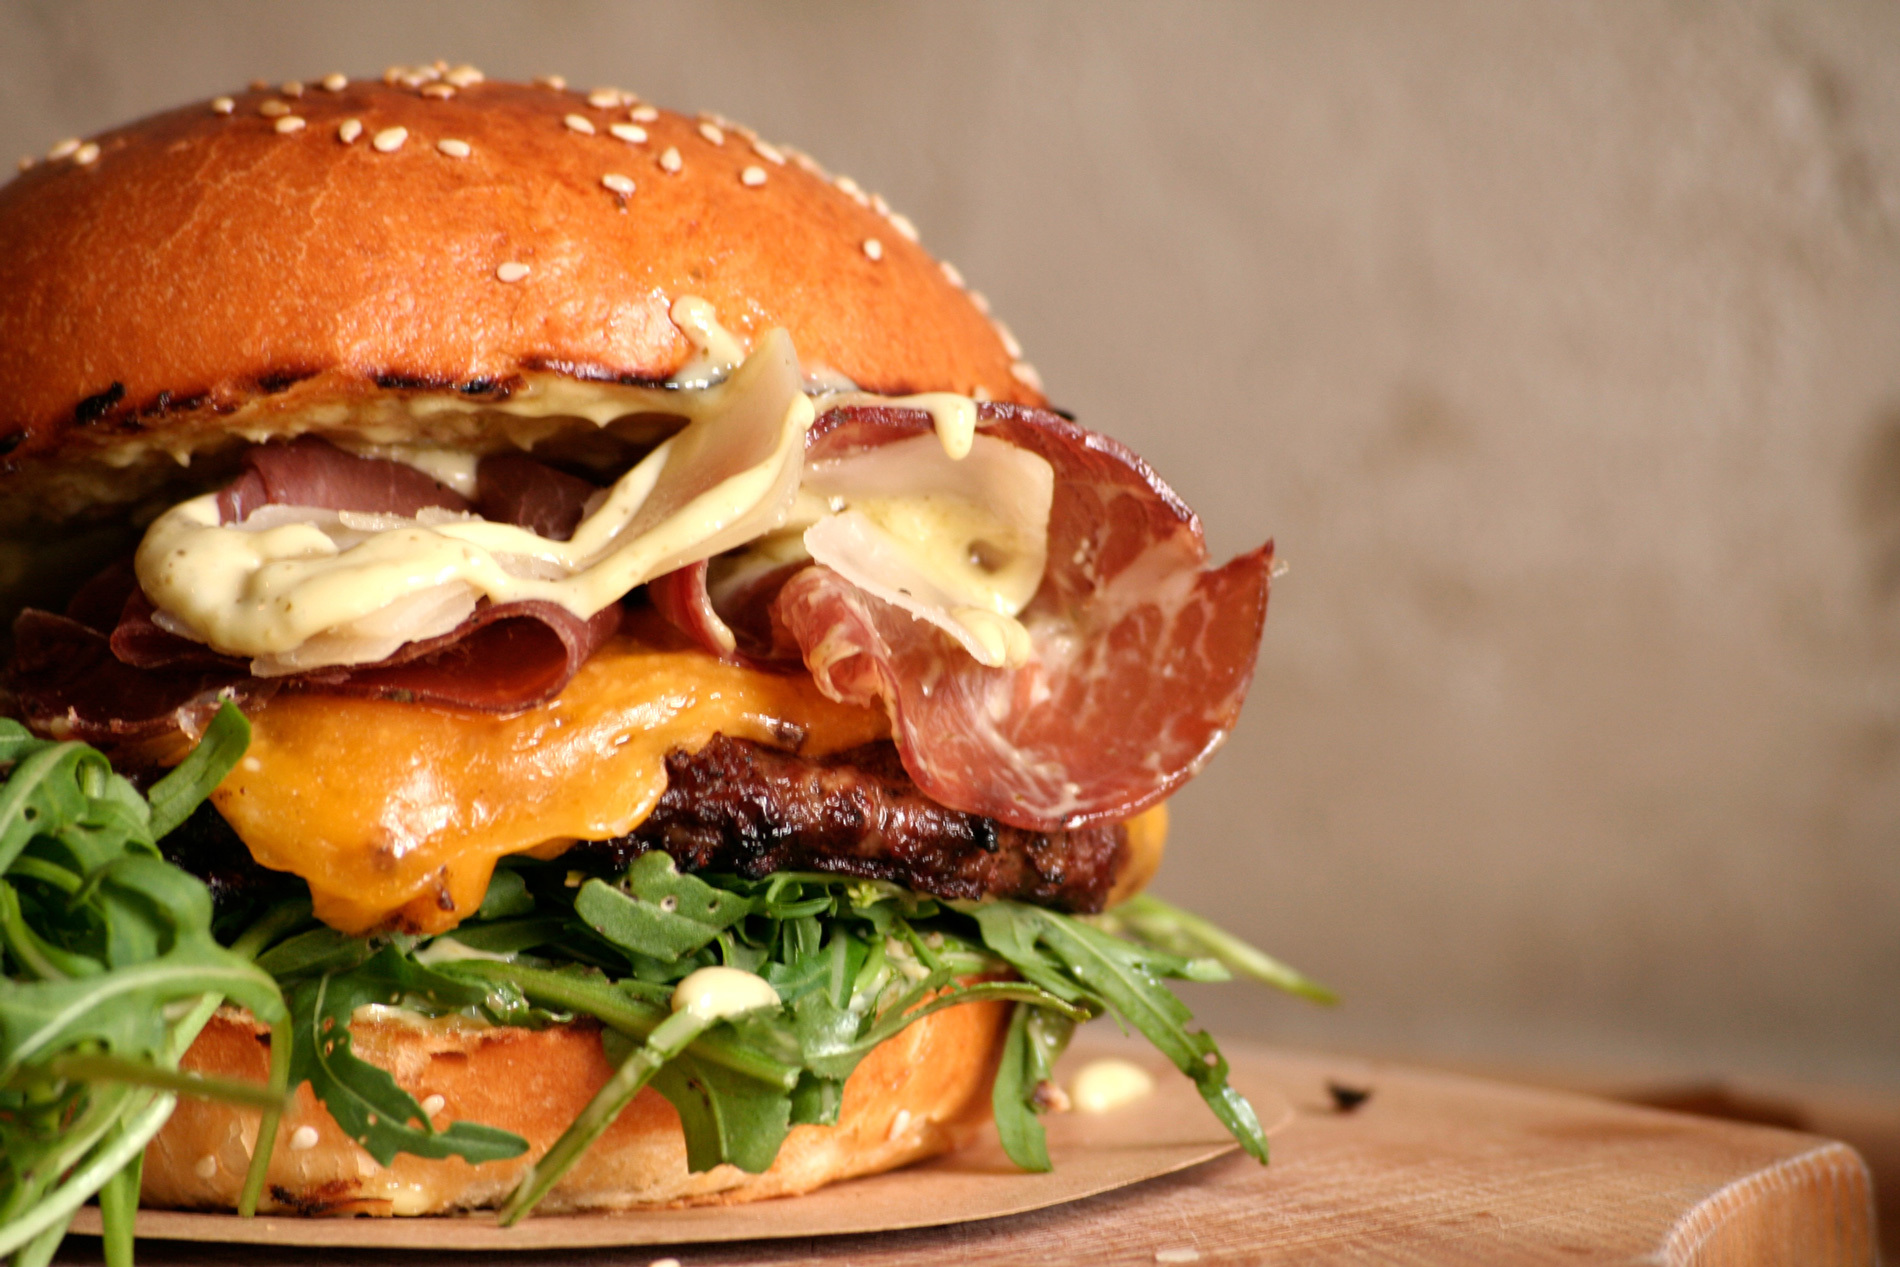 Winner of Zagreb's best burger revealed